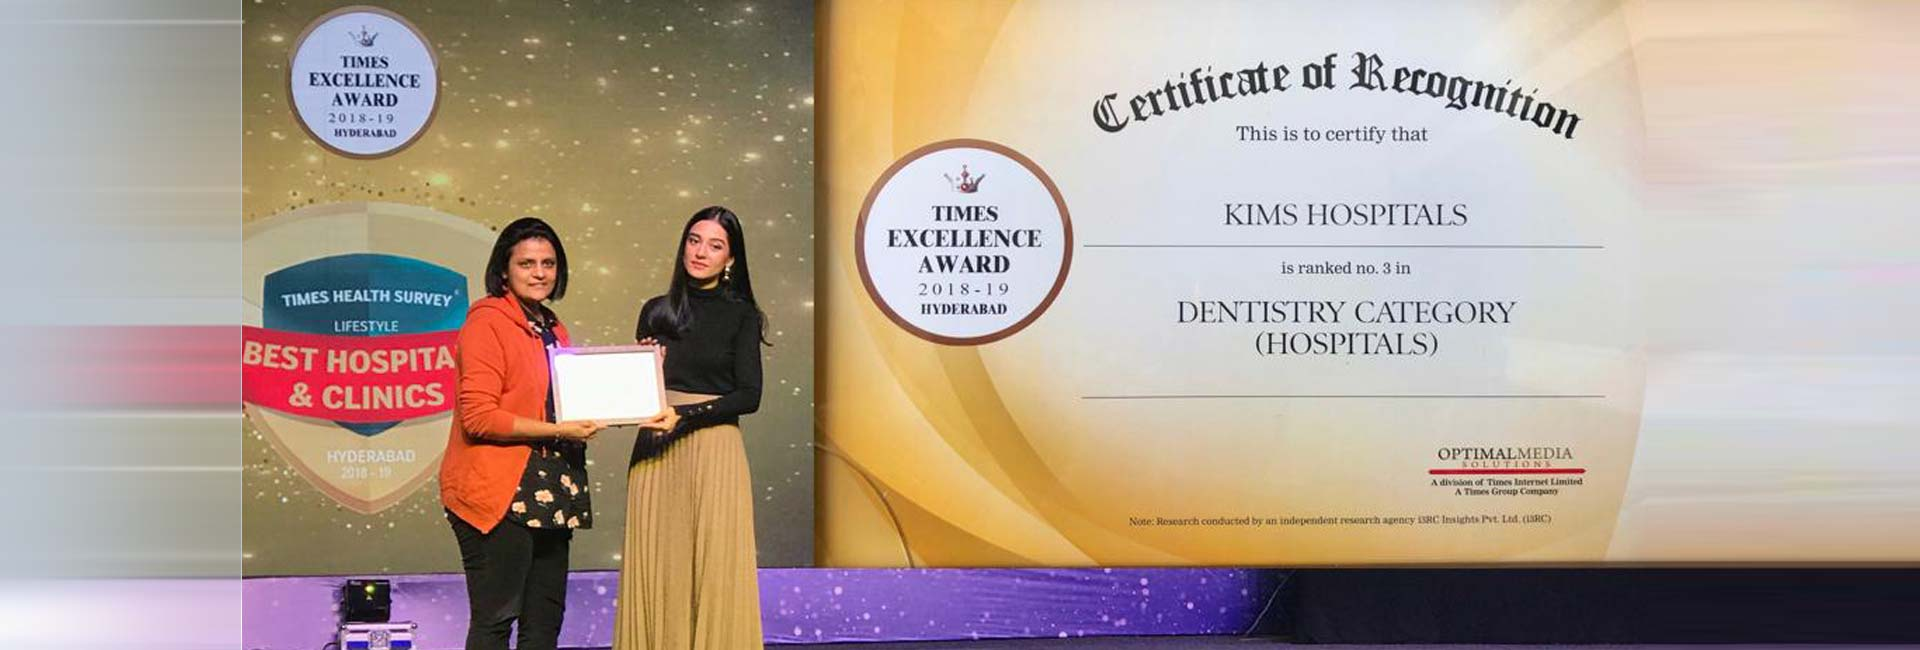 Recognition of certificate for Kims dental, best dental care clinic in Kondapur and best Dentist in India